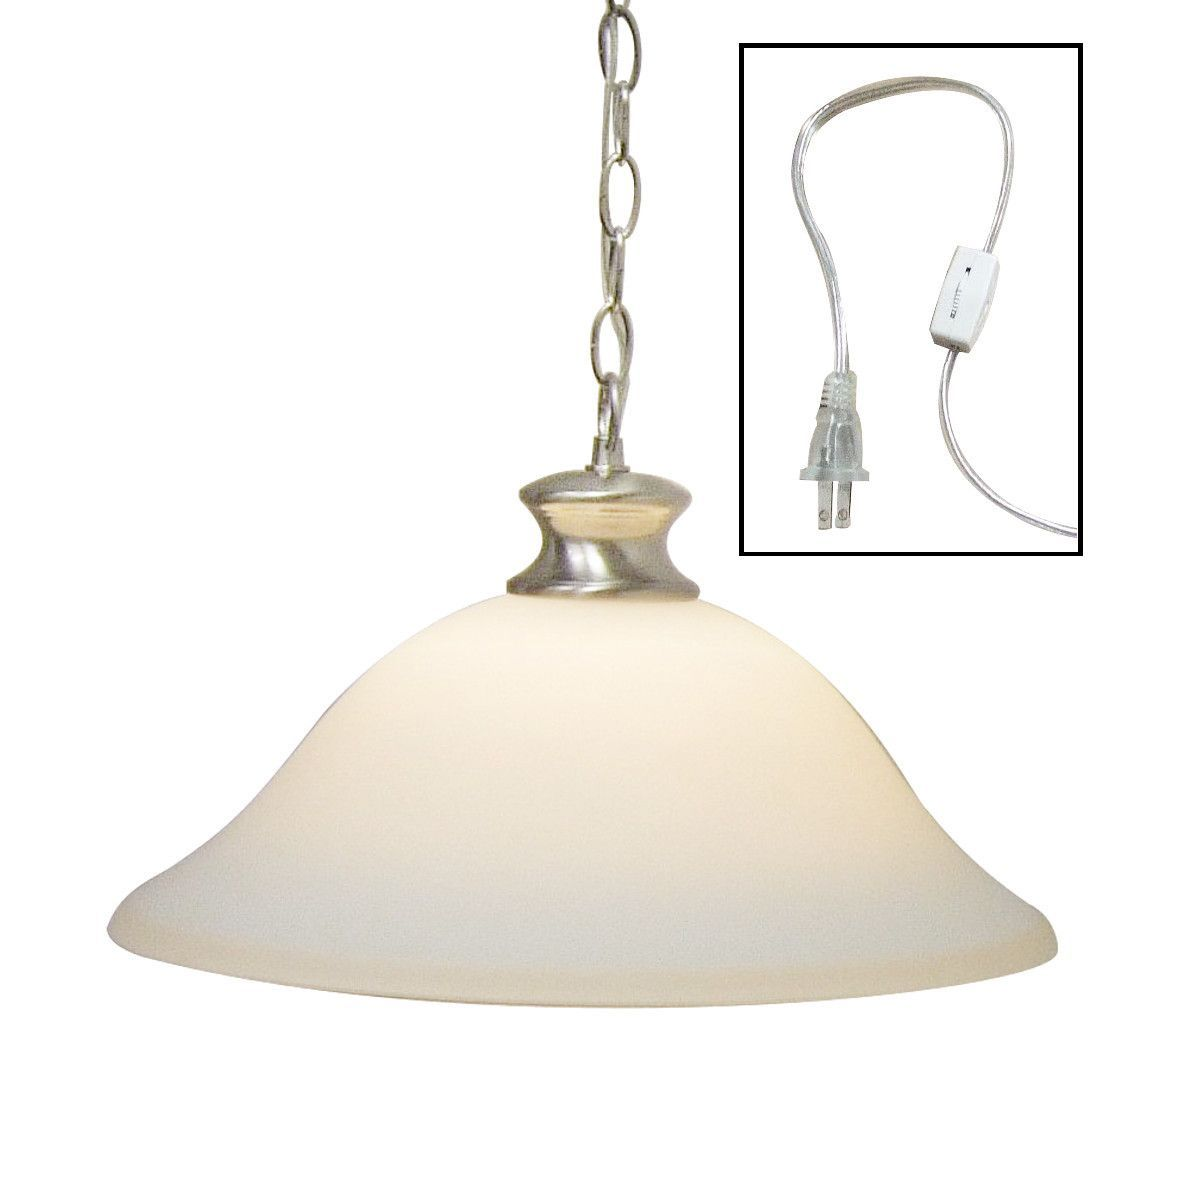 Dolan Designs Glass Shade Swag Lamp Brushed Nickel So121 09 Lampsusa Swag Pendant Light Glass Shades Swag Light